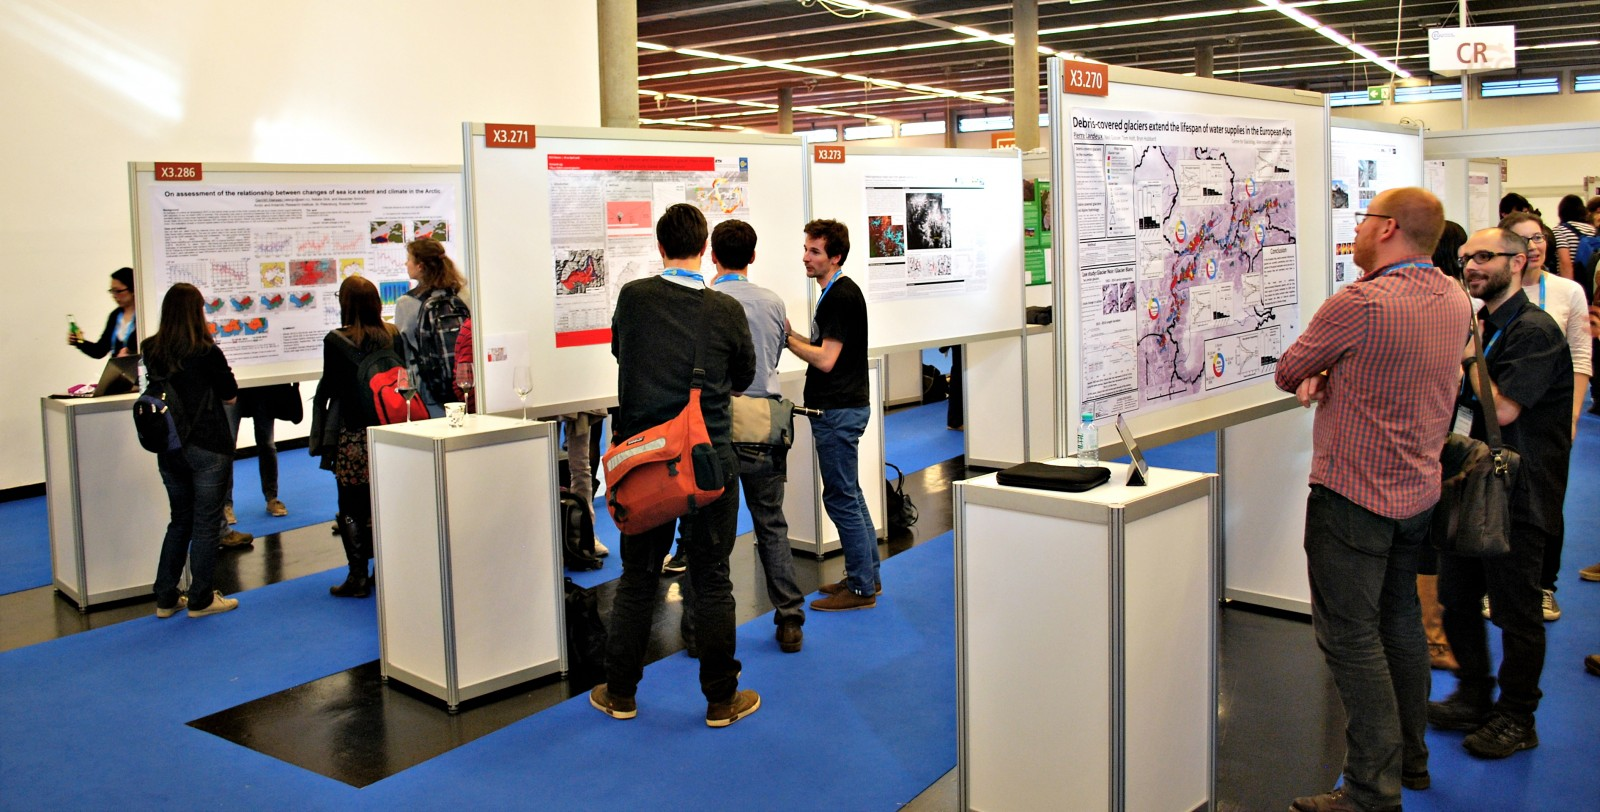 A cryosphere poster session at the 2016 EGU General Assembly. Photo Credit: Kai Boggild.